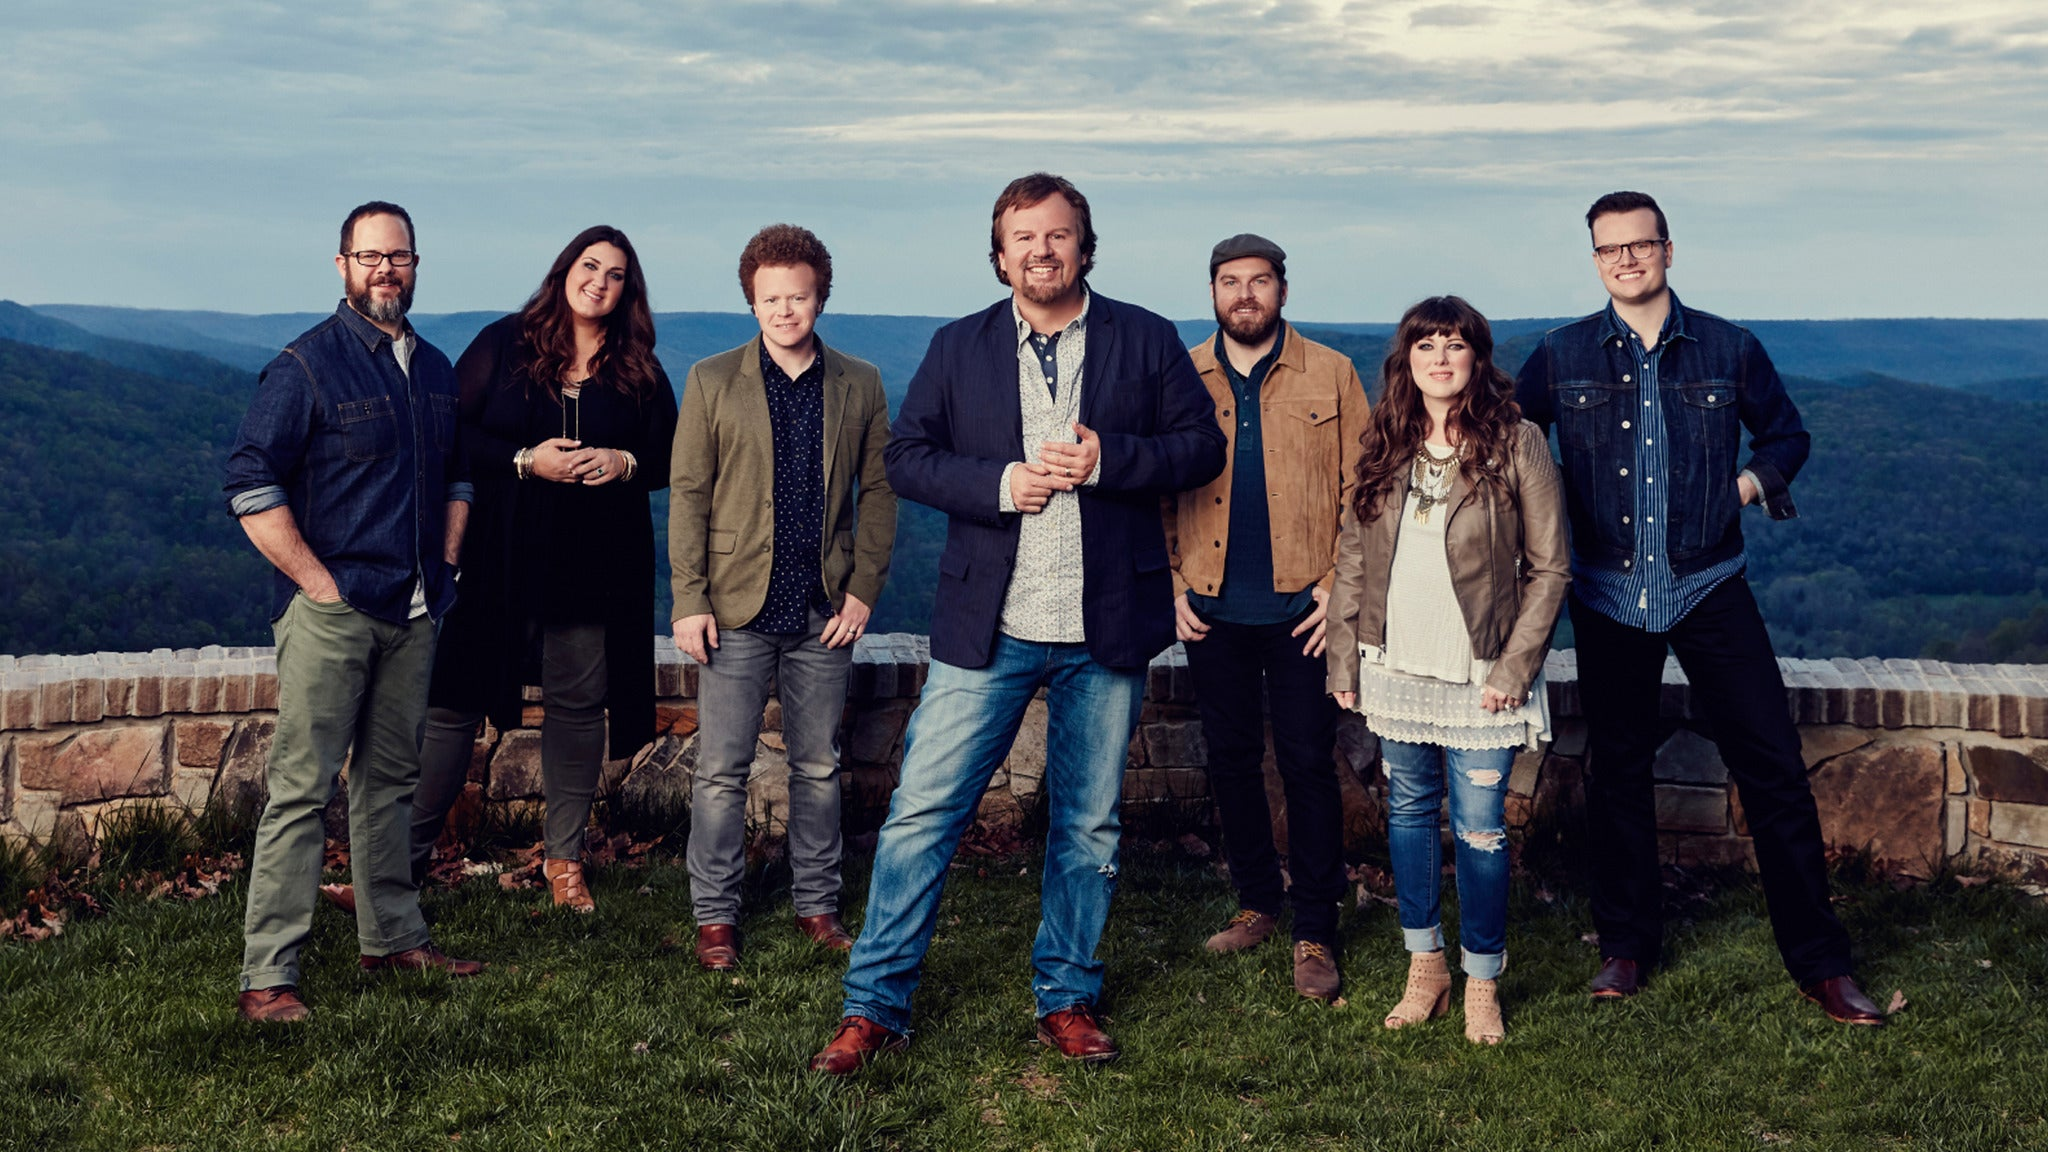 Casting Crowns at United Wireless Arena